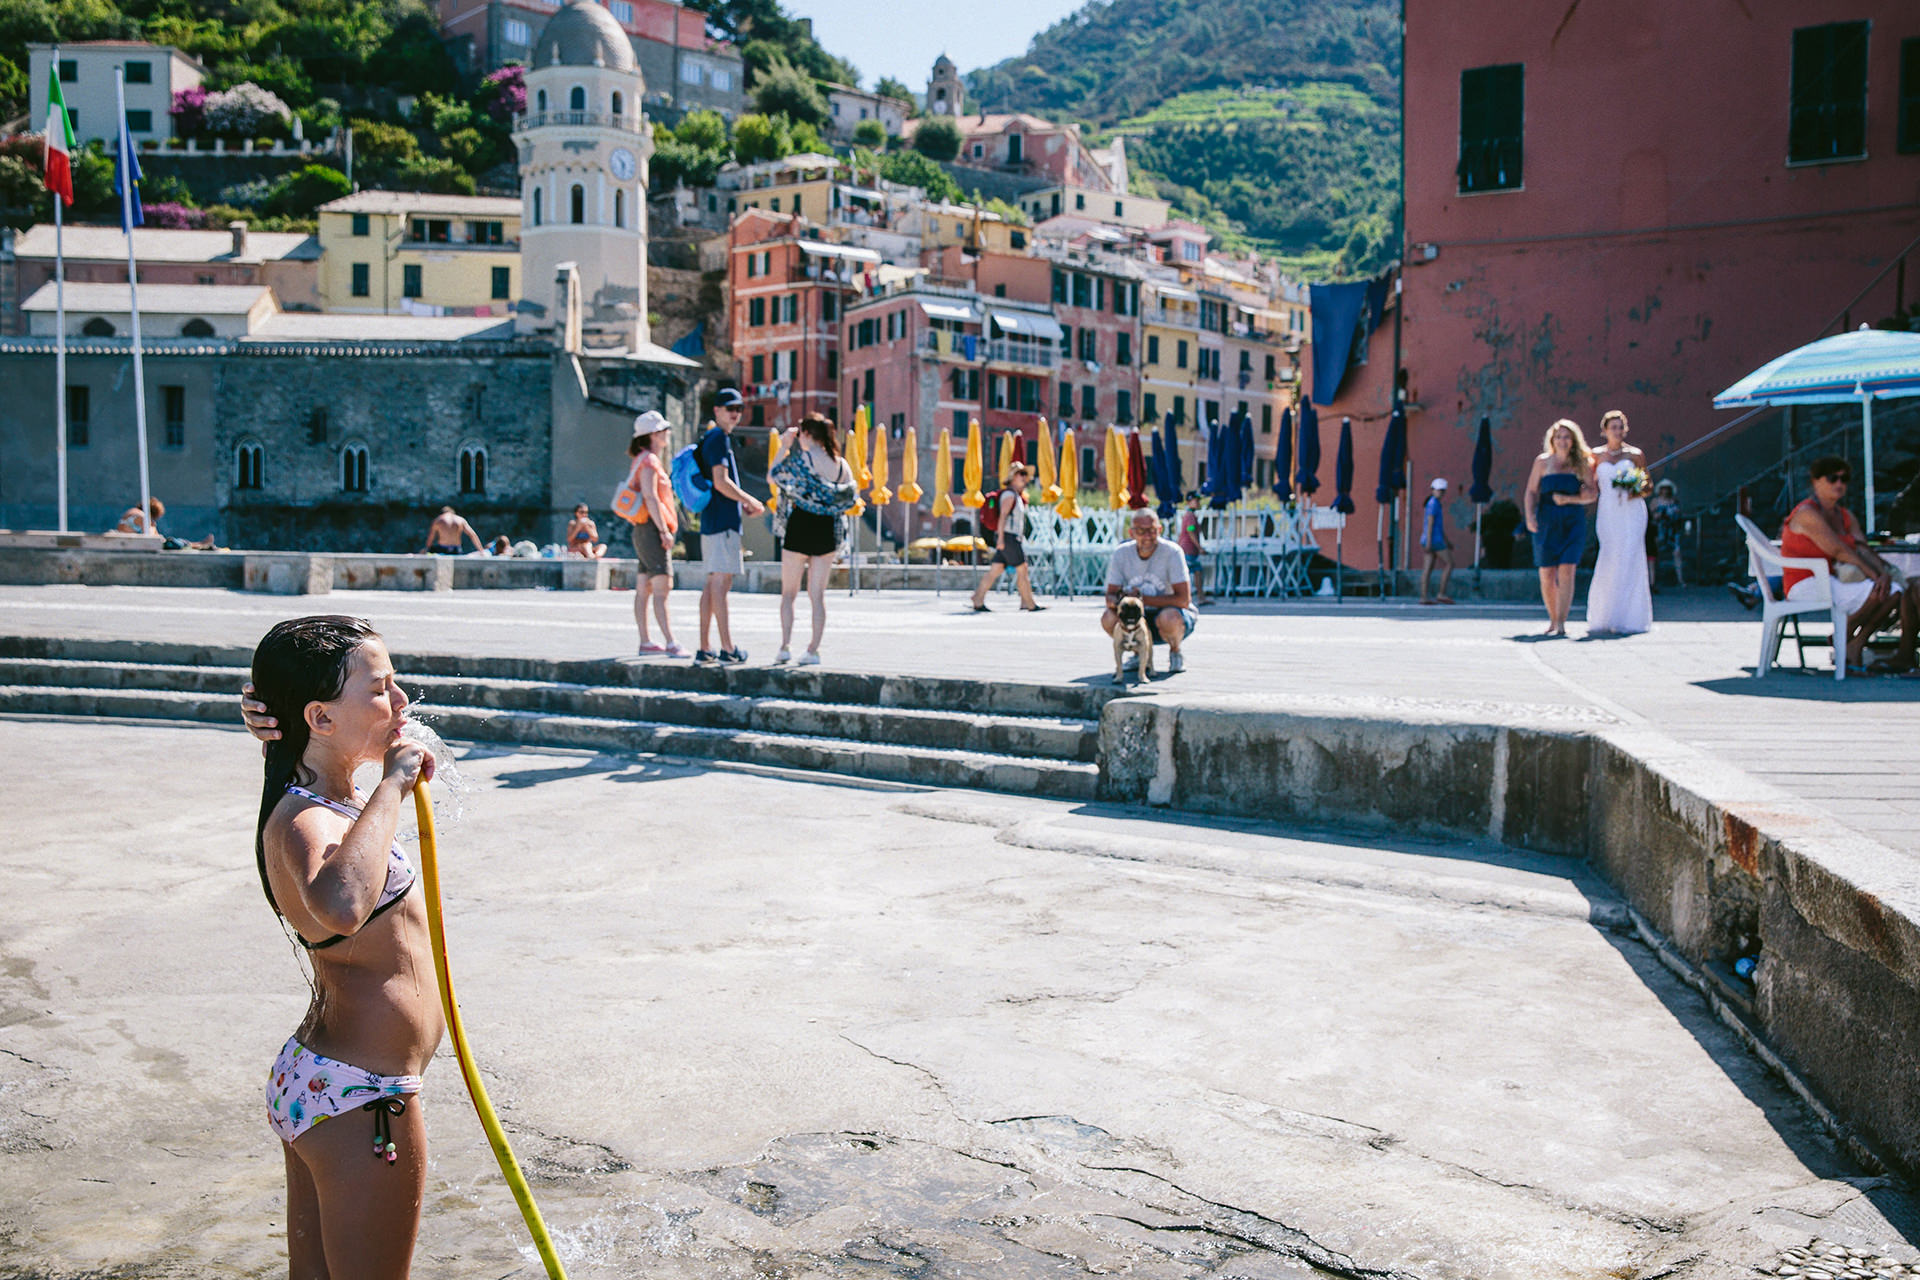 Italy Fisherman Village Wedding - IT Elopement Photo | Bride and maid of honor approaching the pier in Vernazza